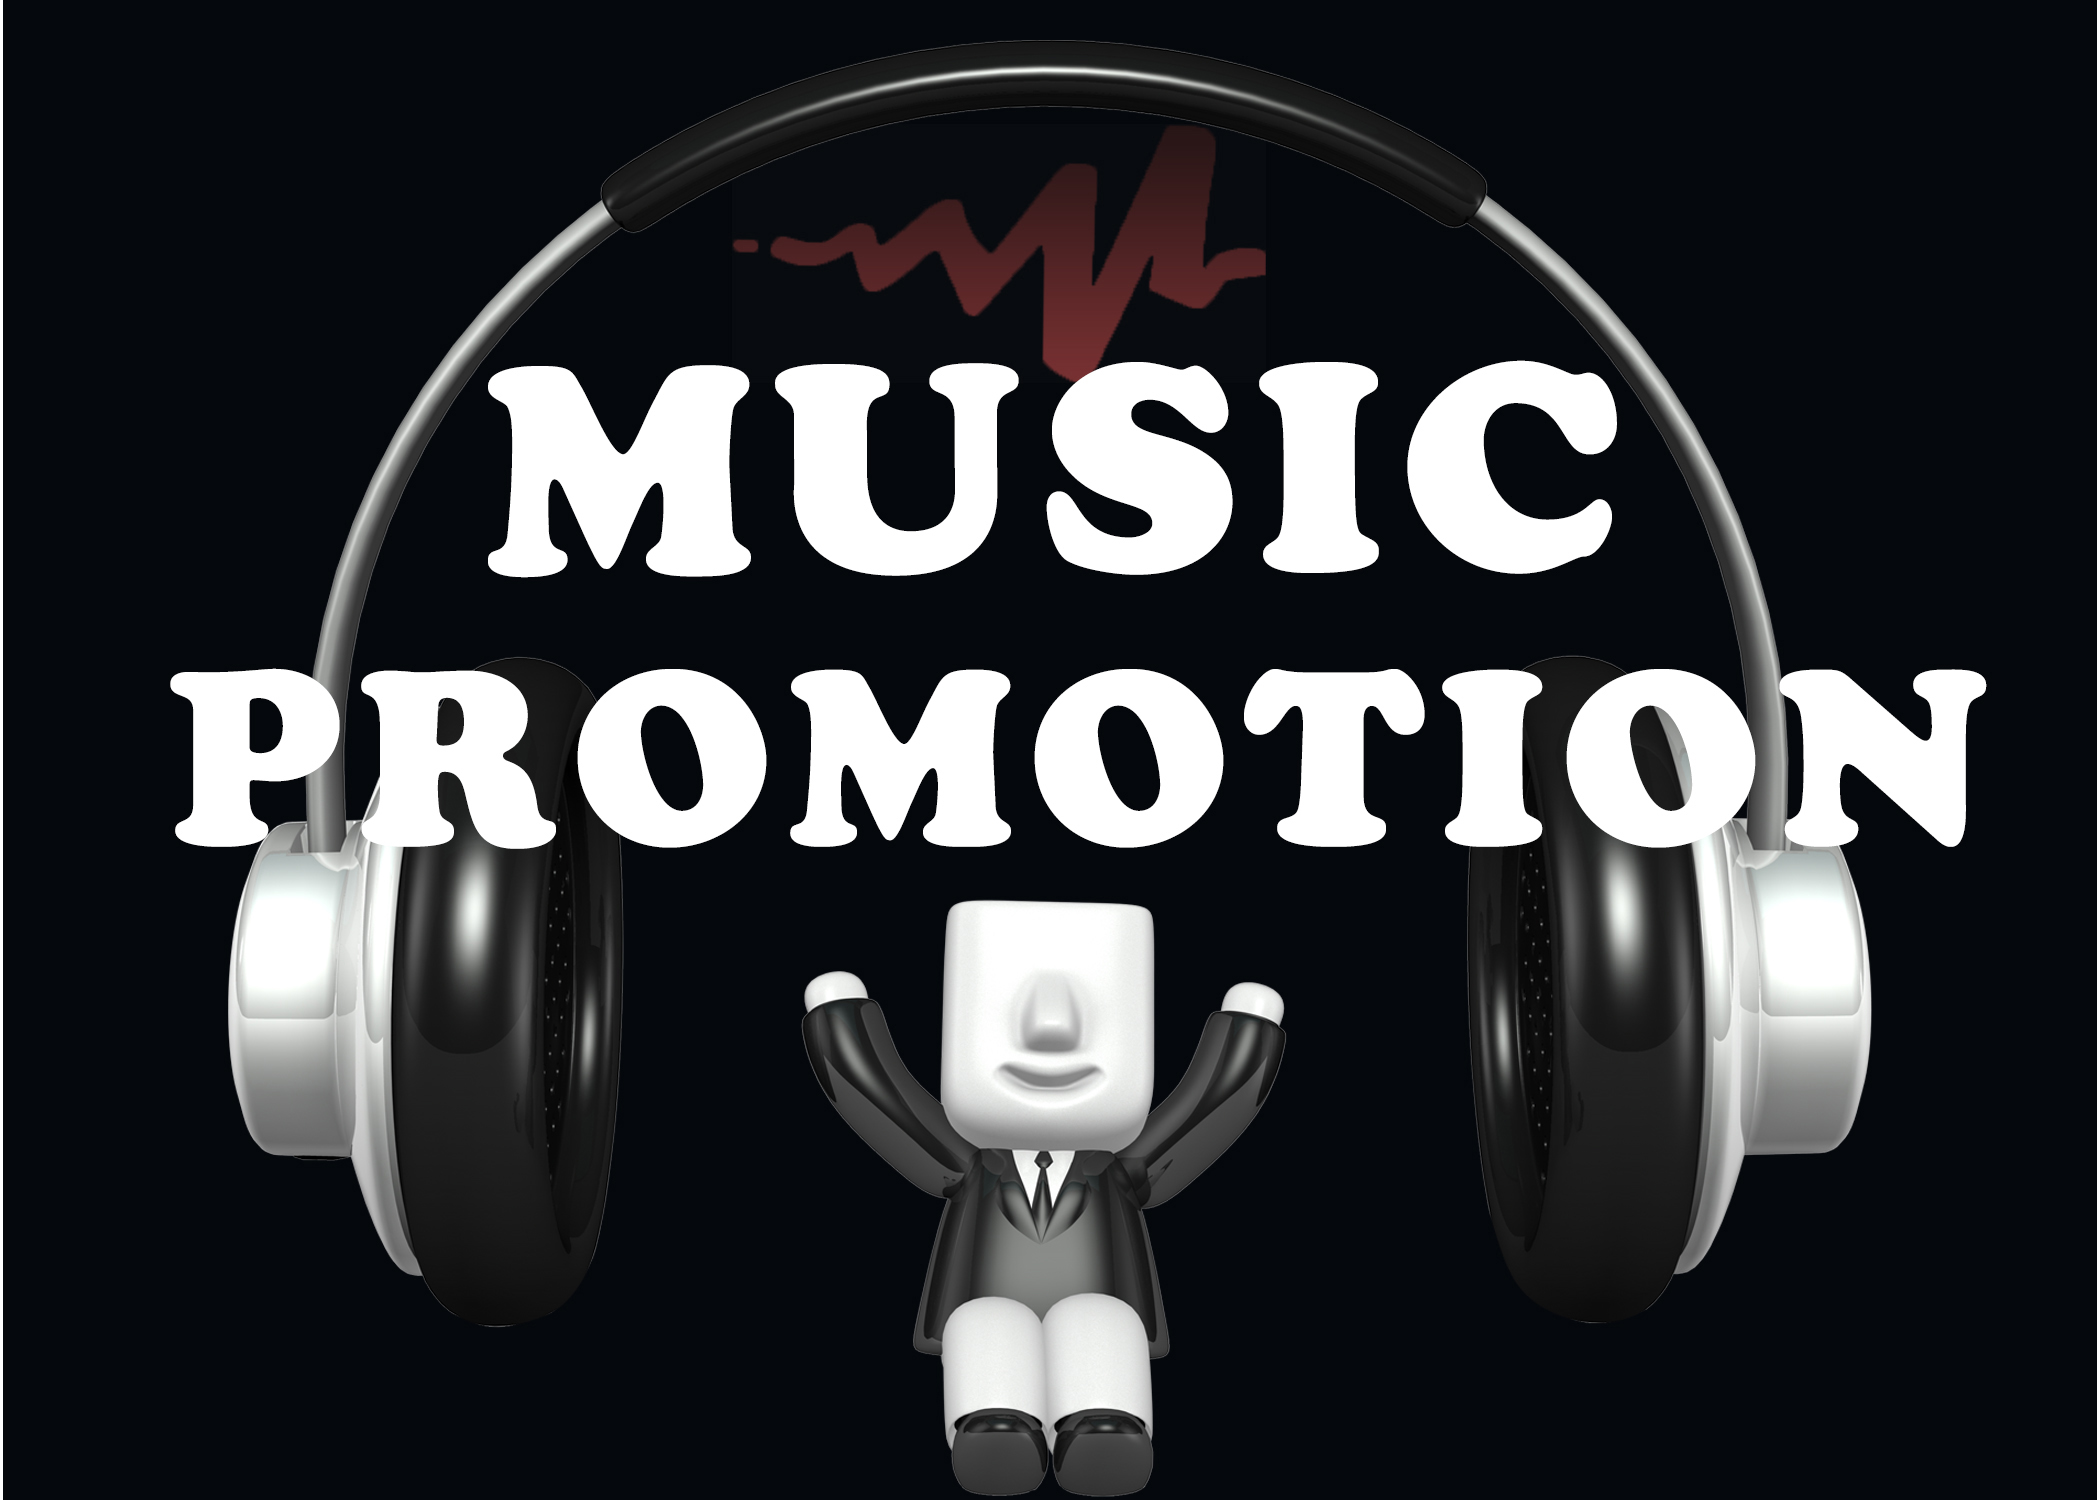 Get Organic Audio & Music Promotion Through GaudioMack's Pro Lovers